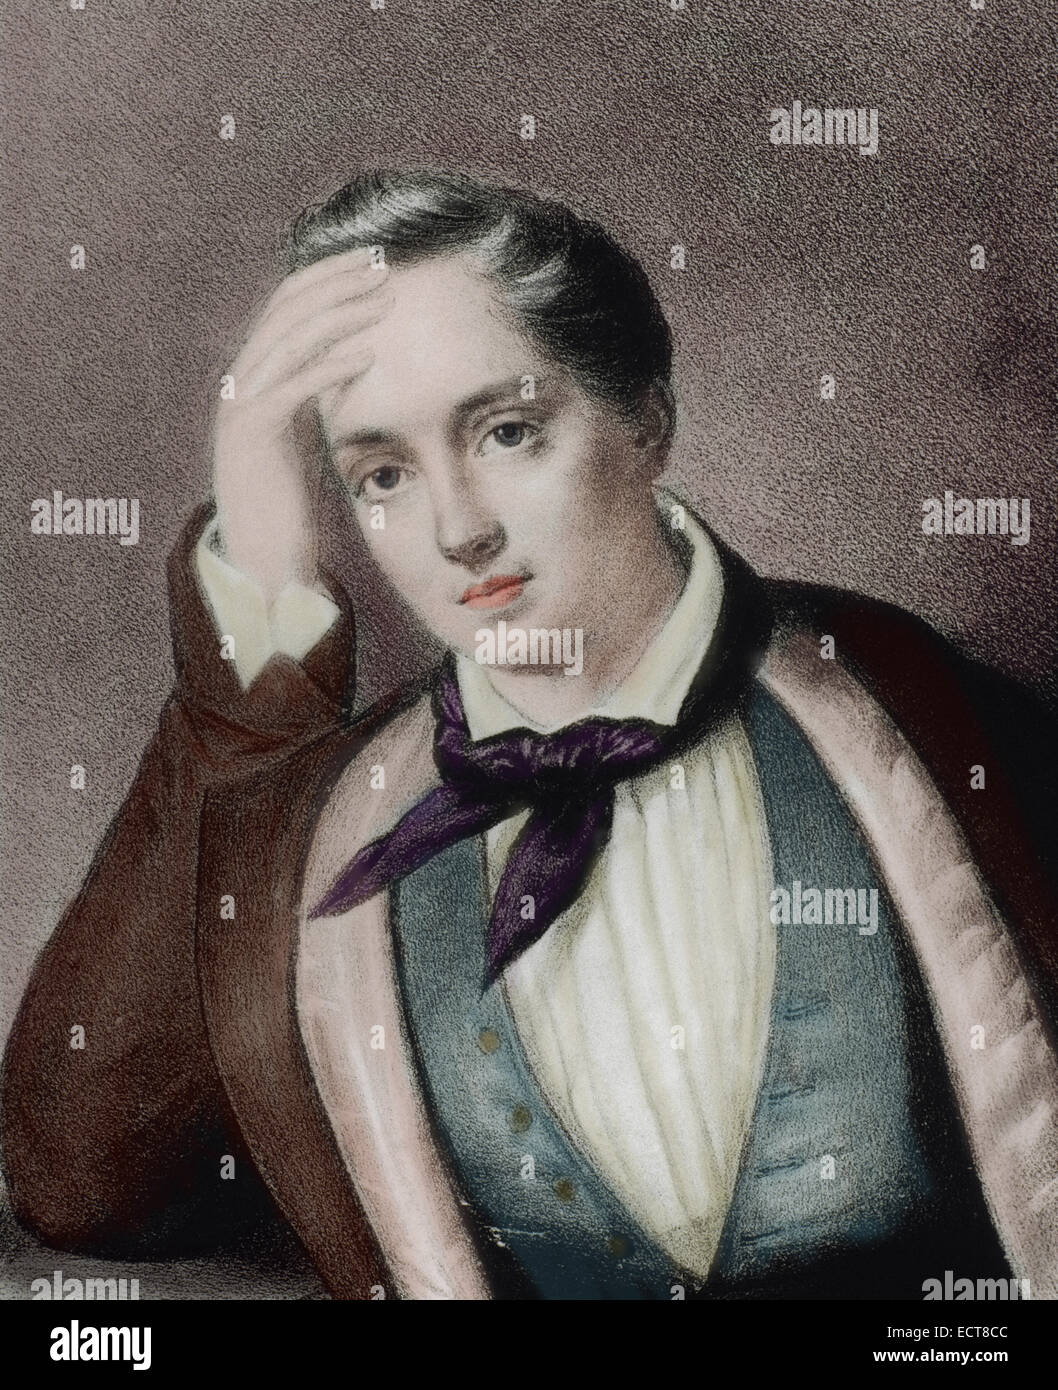 Yevgeny Baratynsky (1800-1844). Russian poet. Romanticism style. Portrait. Engraving. Colored. - Stock Image